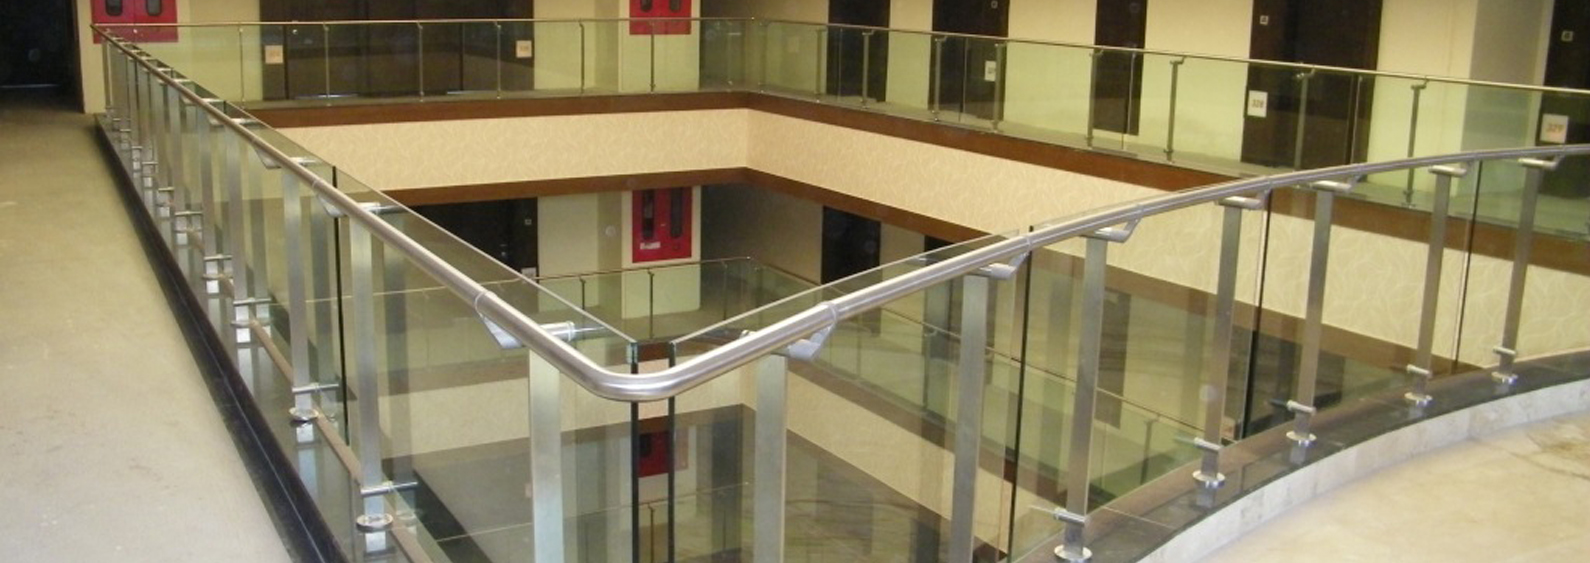 Q railing| q railing dealers in Hyderabad| Stainless steel railings| glass  balustrades